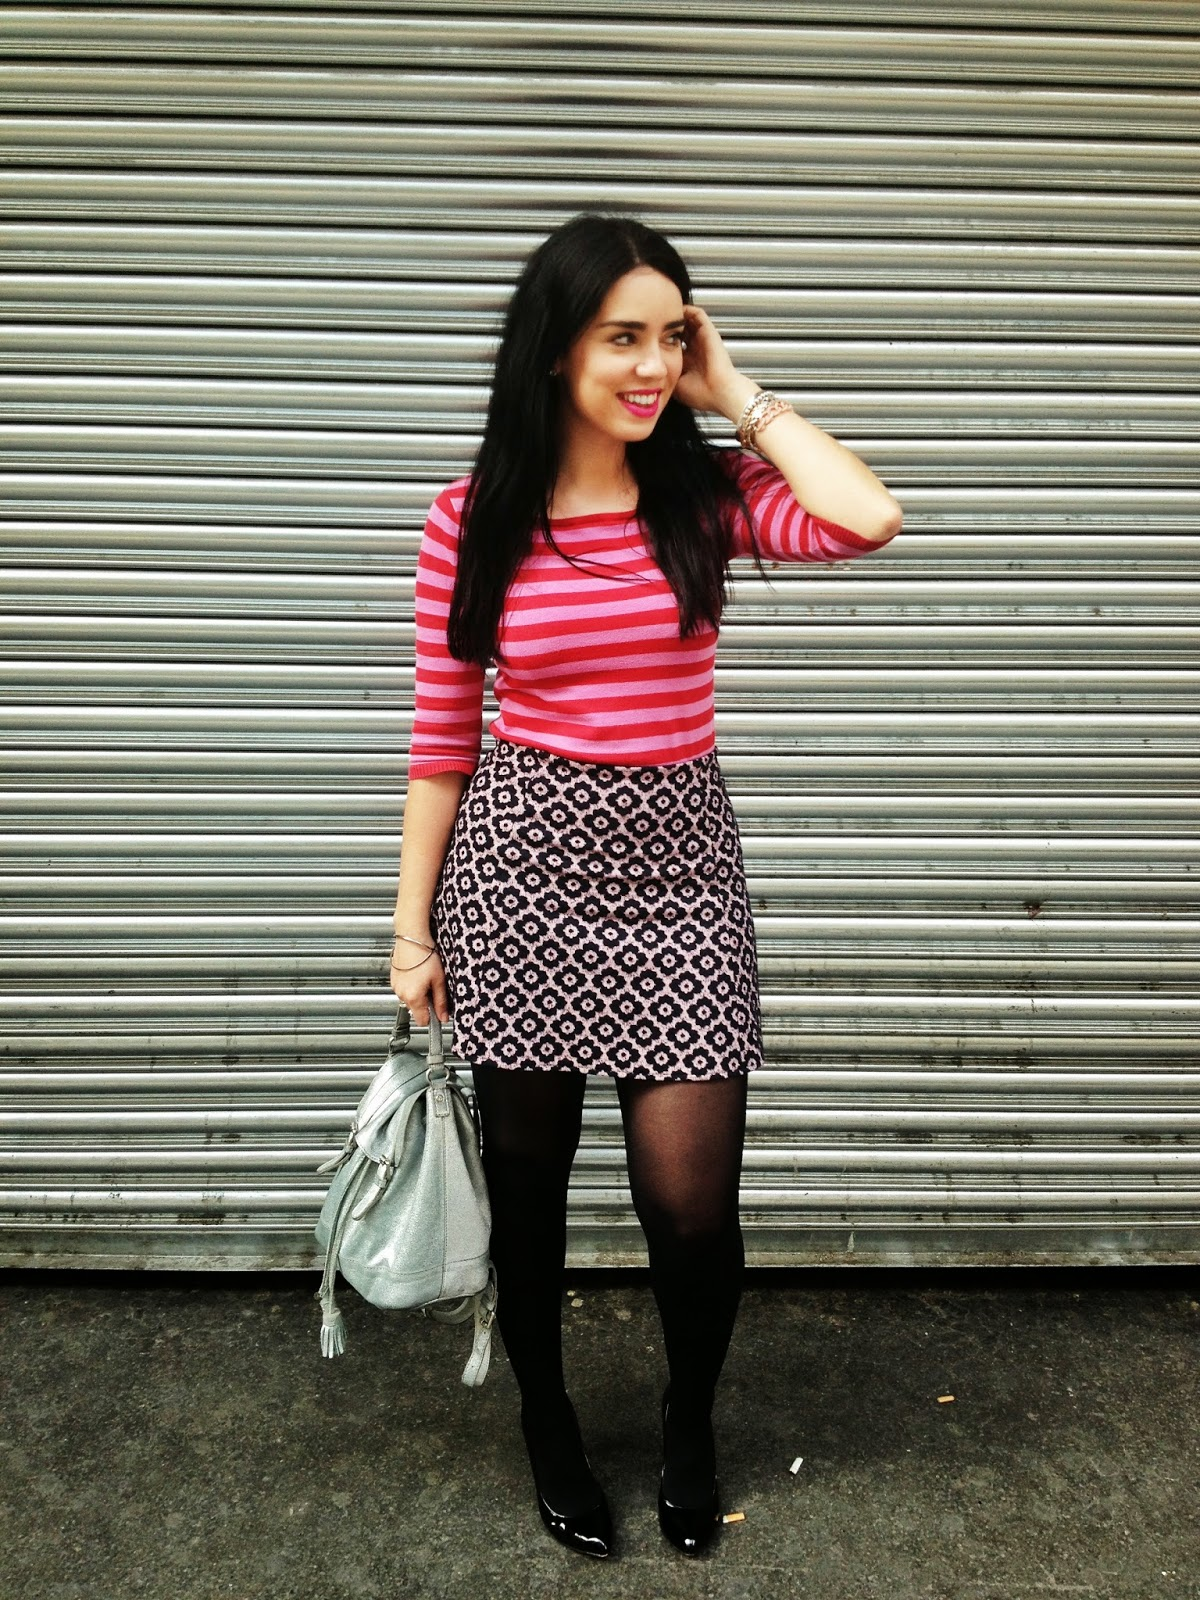 Emma Louise Layla in pink red stripes and floral print - London fashion blogger